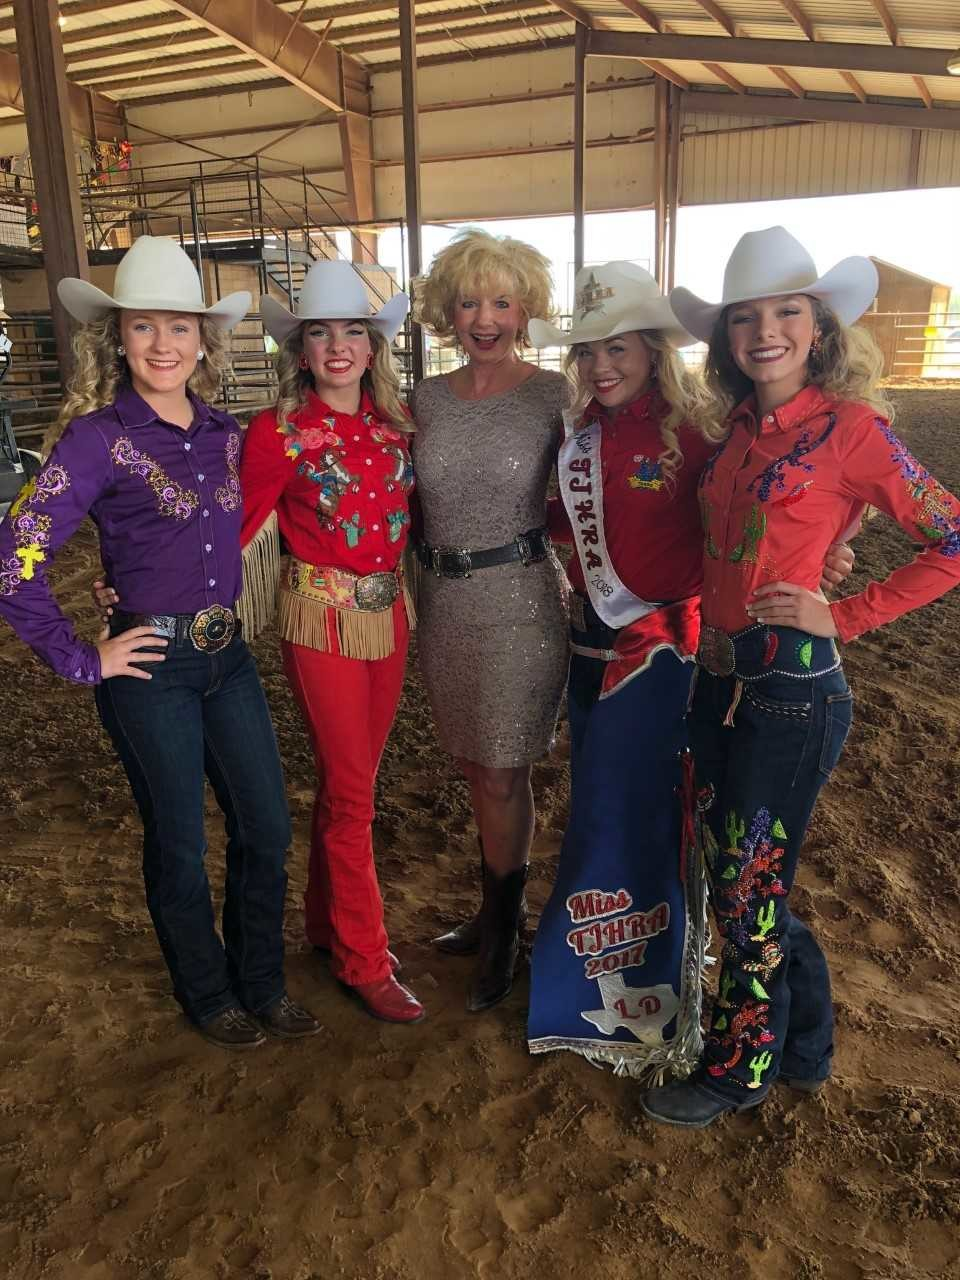 Gonzales Mayor Connie Kacir greets some of the Texas Junior High Rodeo Association royalty at the recent event that concluded last week. After discussions and a vote, the association decided to return to town for the next five years on a near unanimous decision. Pictured with Mayor Kacir (middle) are (from left) Katelynn Miller second runner up, Genevieve Blanchard first runner up, Laramie Dearing 2017-18 Princess and Amber Simons 2018-19 Princess.